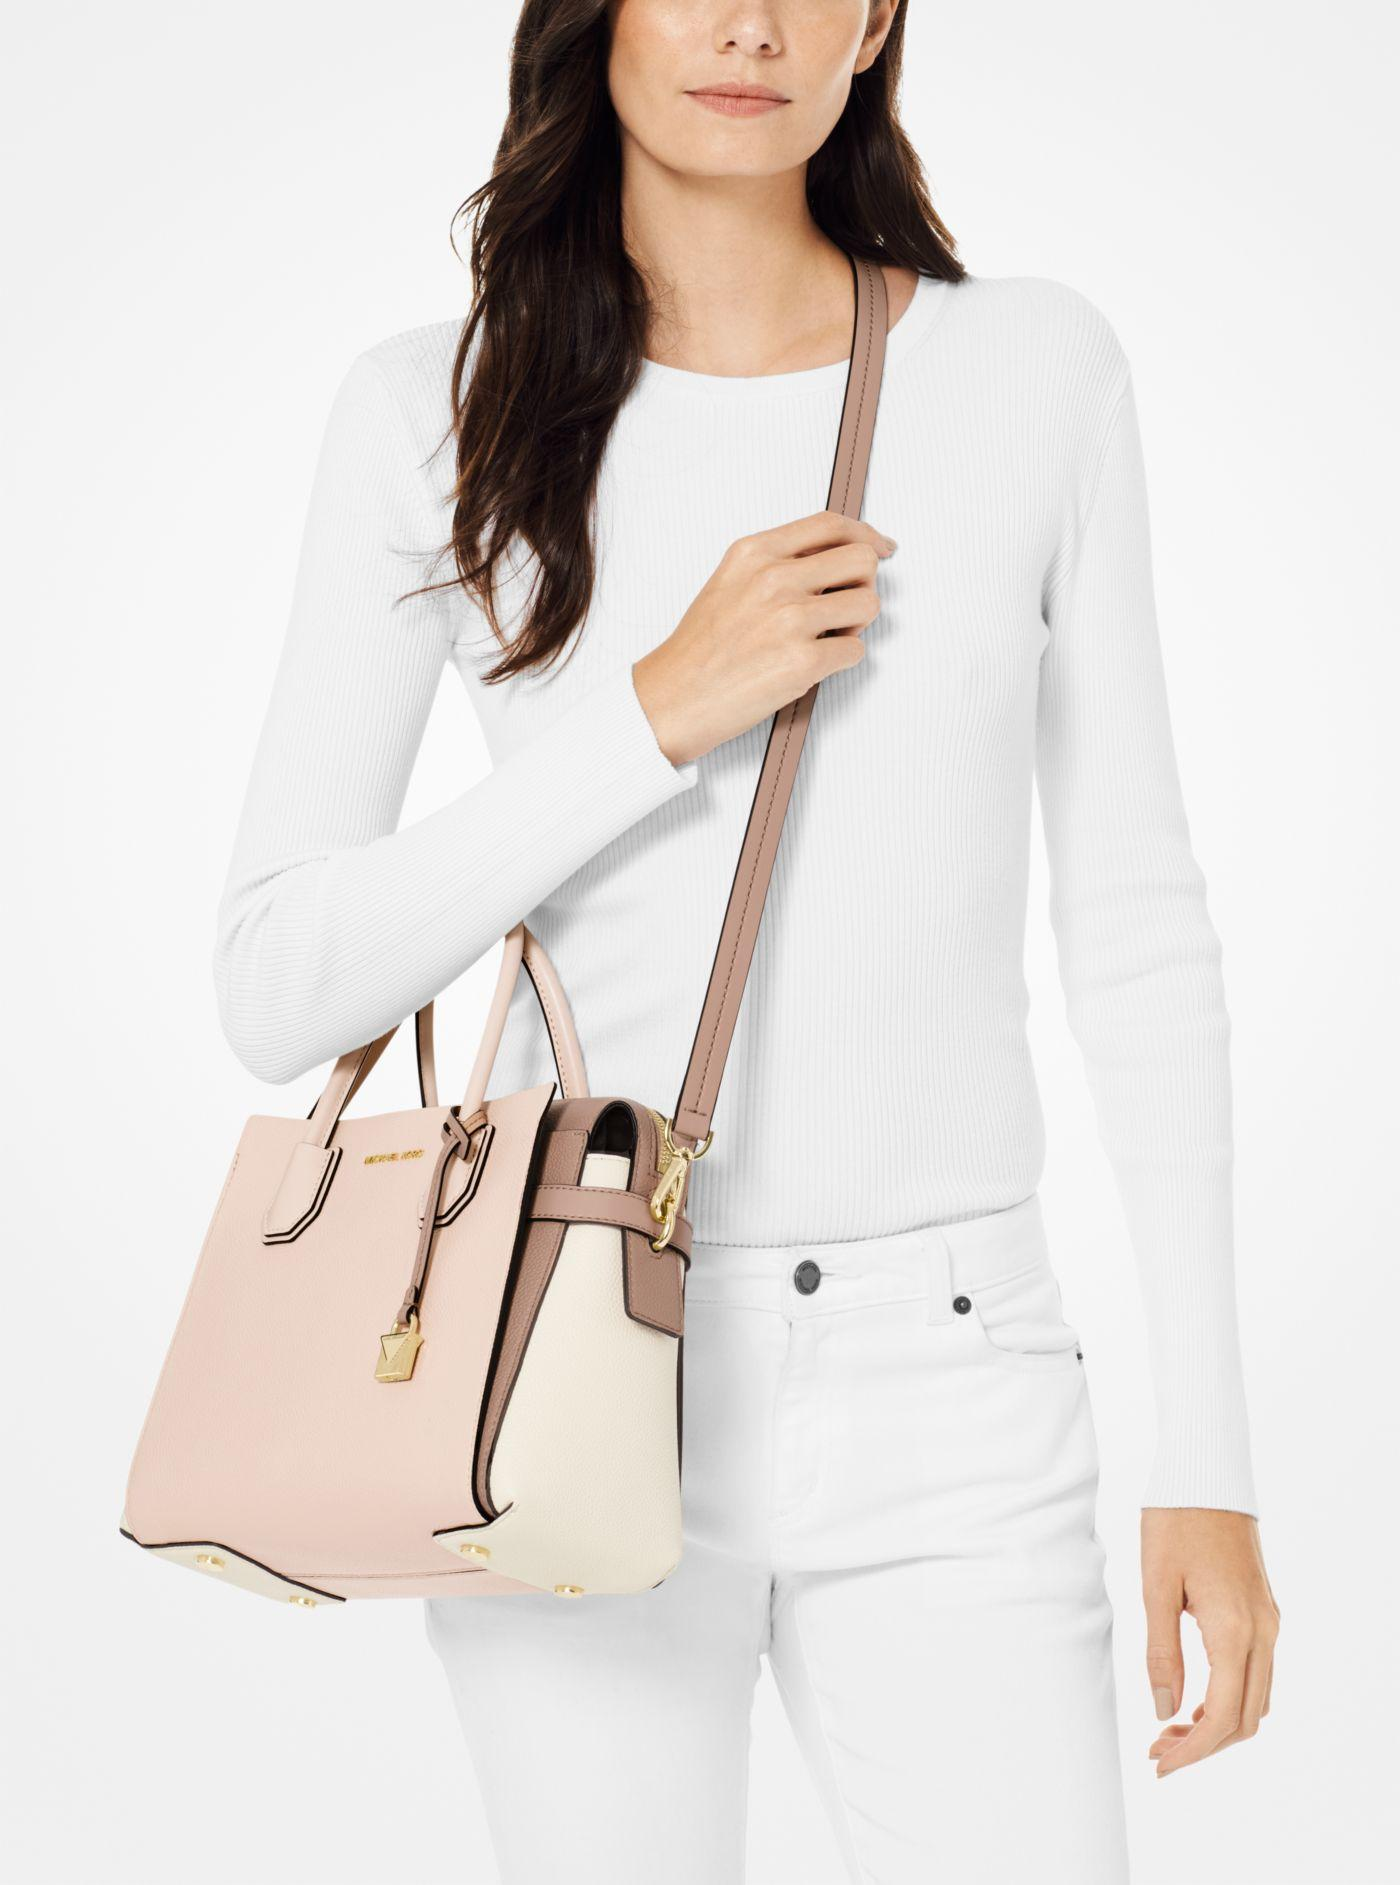 e8a21d91a716 ... Mercer Medium Tri-color Pebbled Leather Belted Satchel - Lyst. View  fullscreen